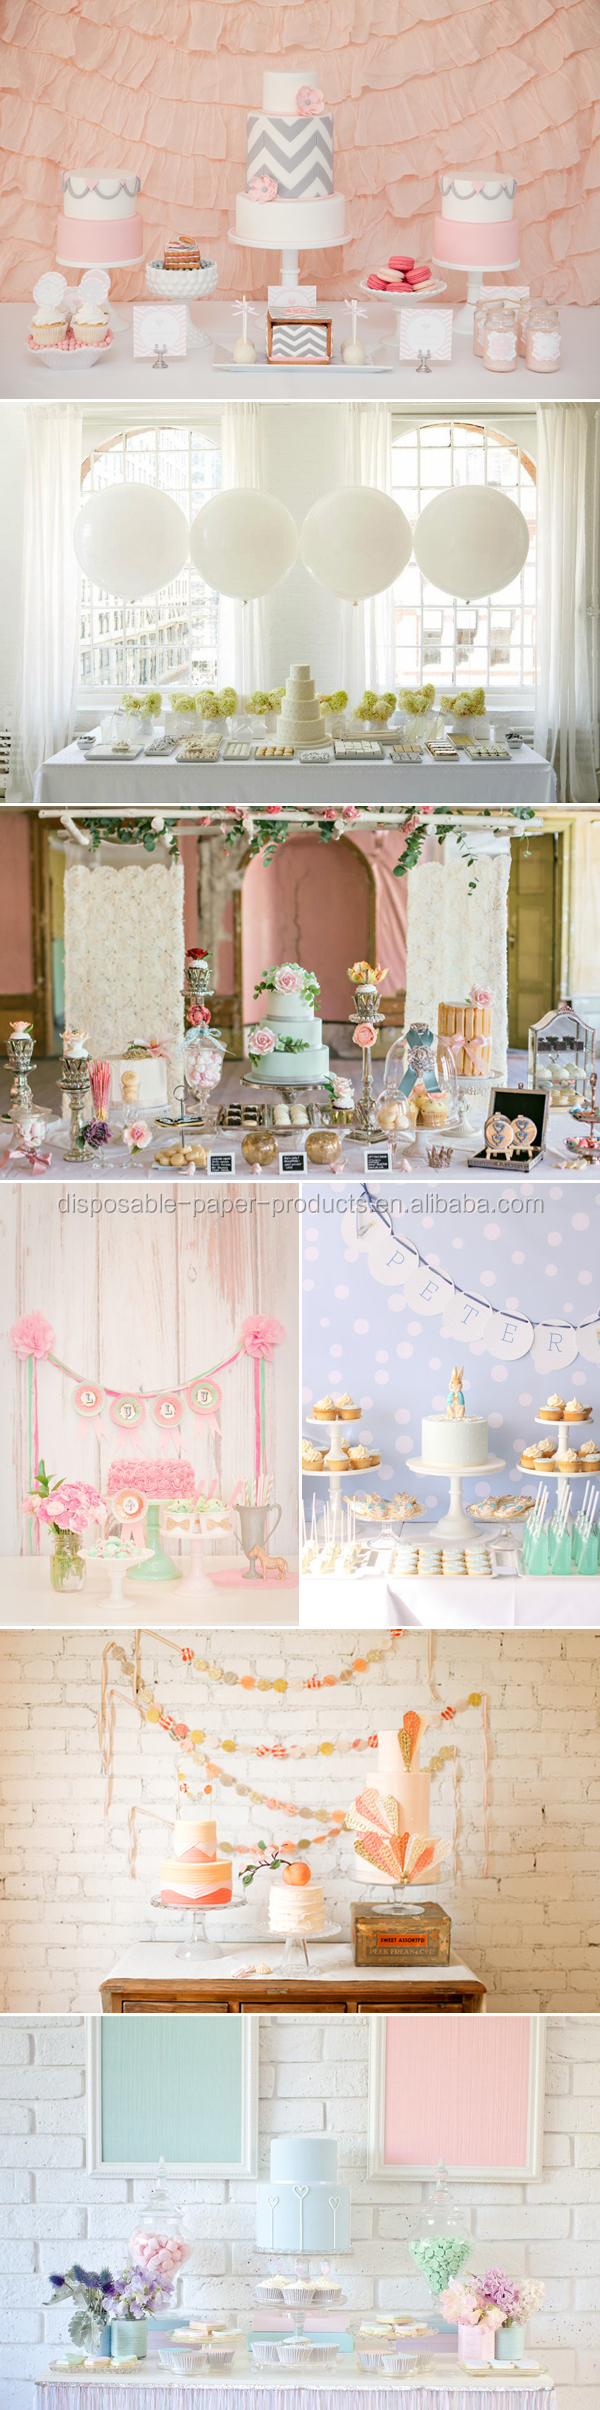 Birthday party backdrop tissue paper pom poms product on alibaba com - First Birthday Party Idea Pastel Tassel Garland Tissue Paper Pom Poms Dessert Tables Decorations Kids Birthday